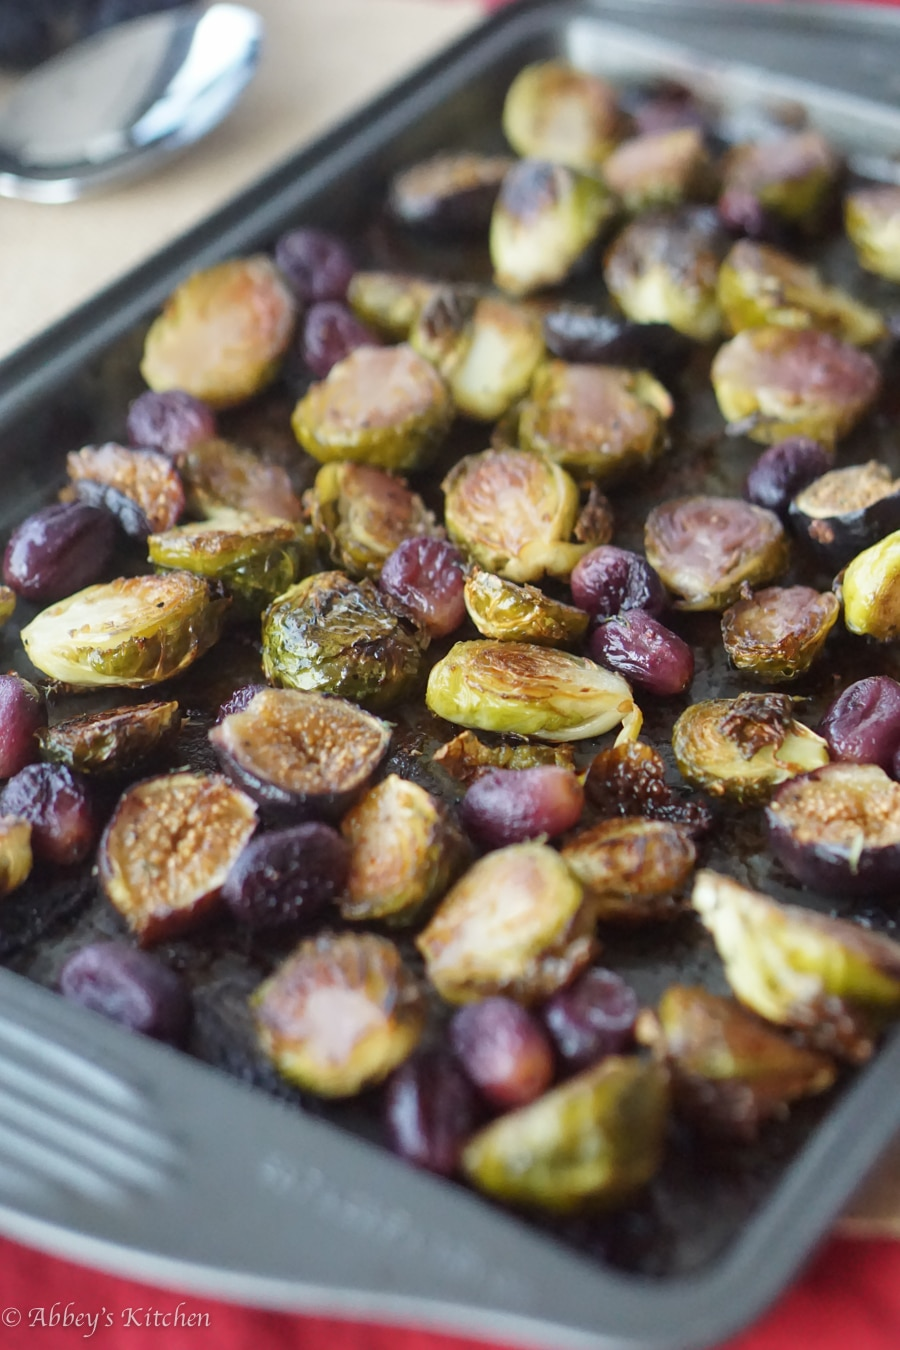 balsamic roasted brussel sprouts, figs, and grapes on a sheet pan